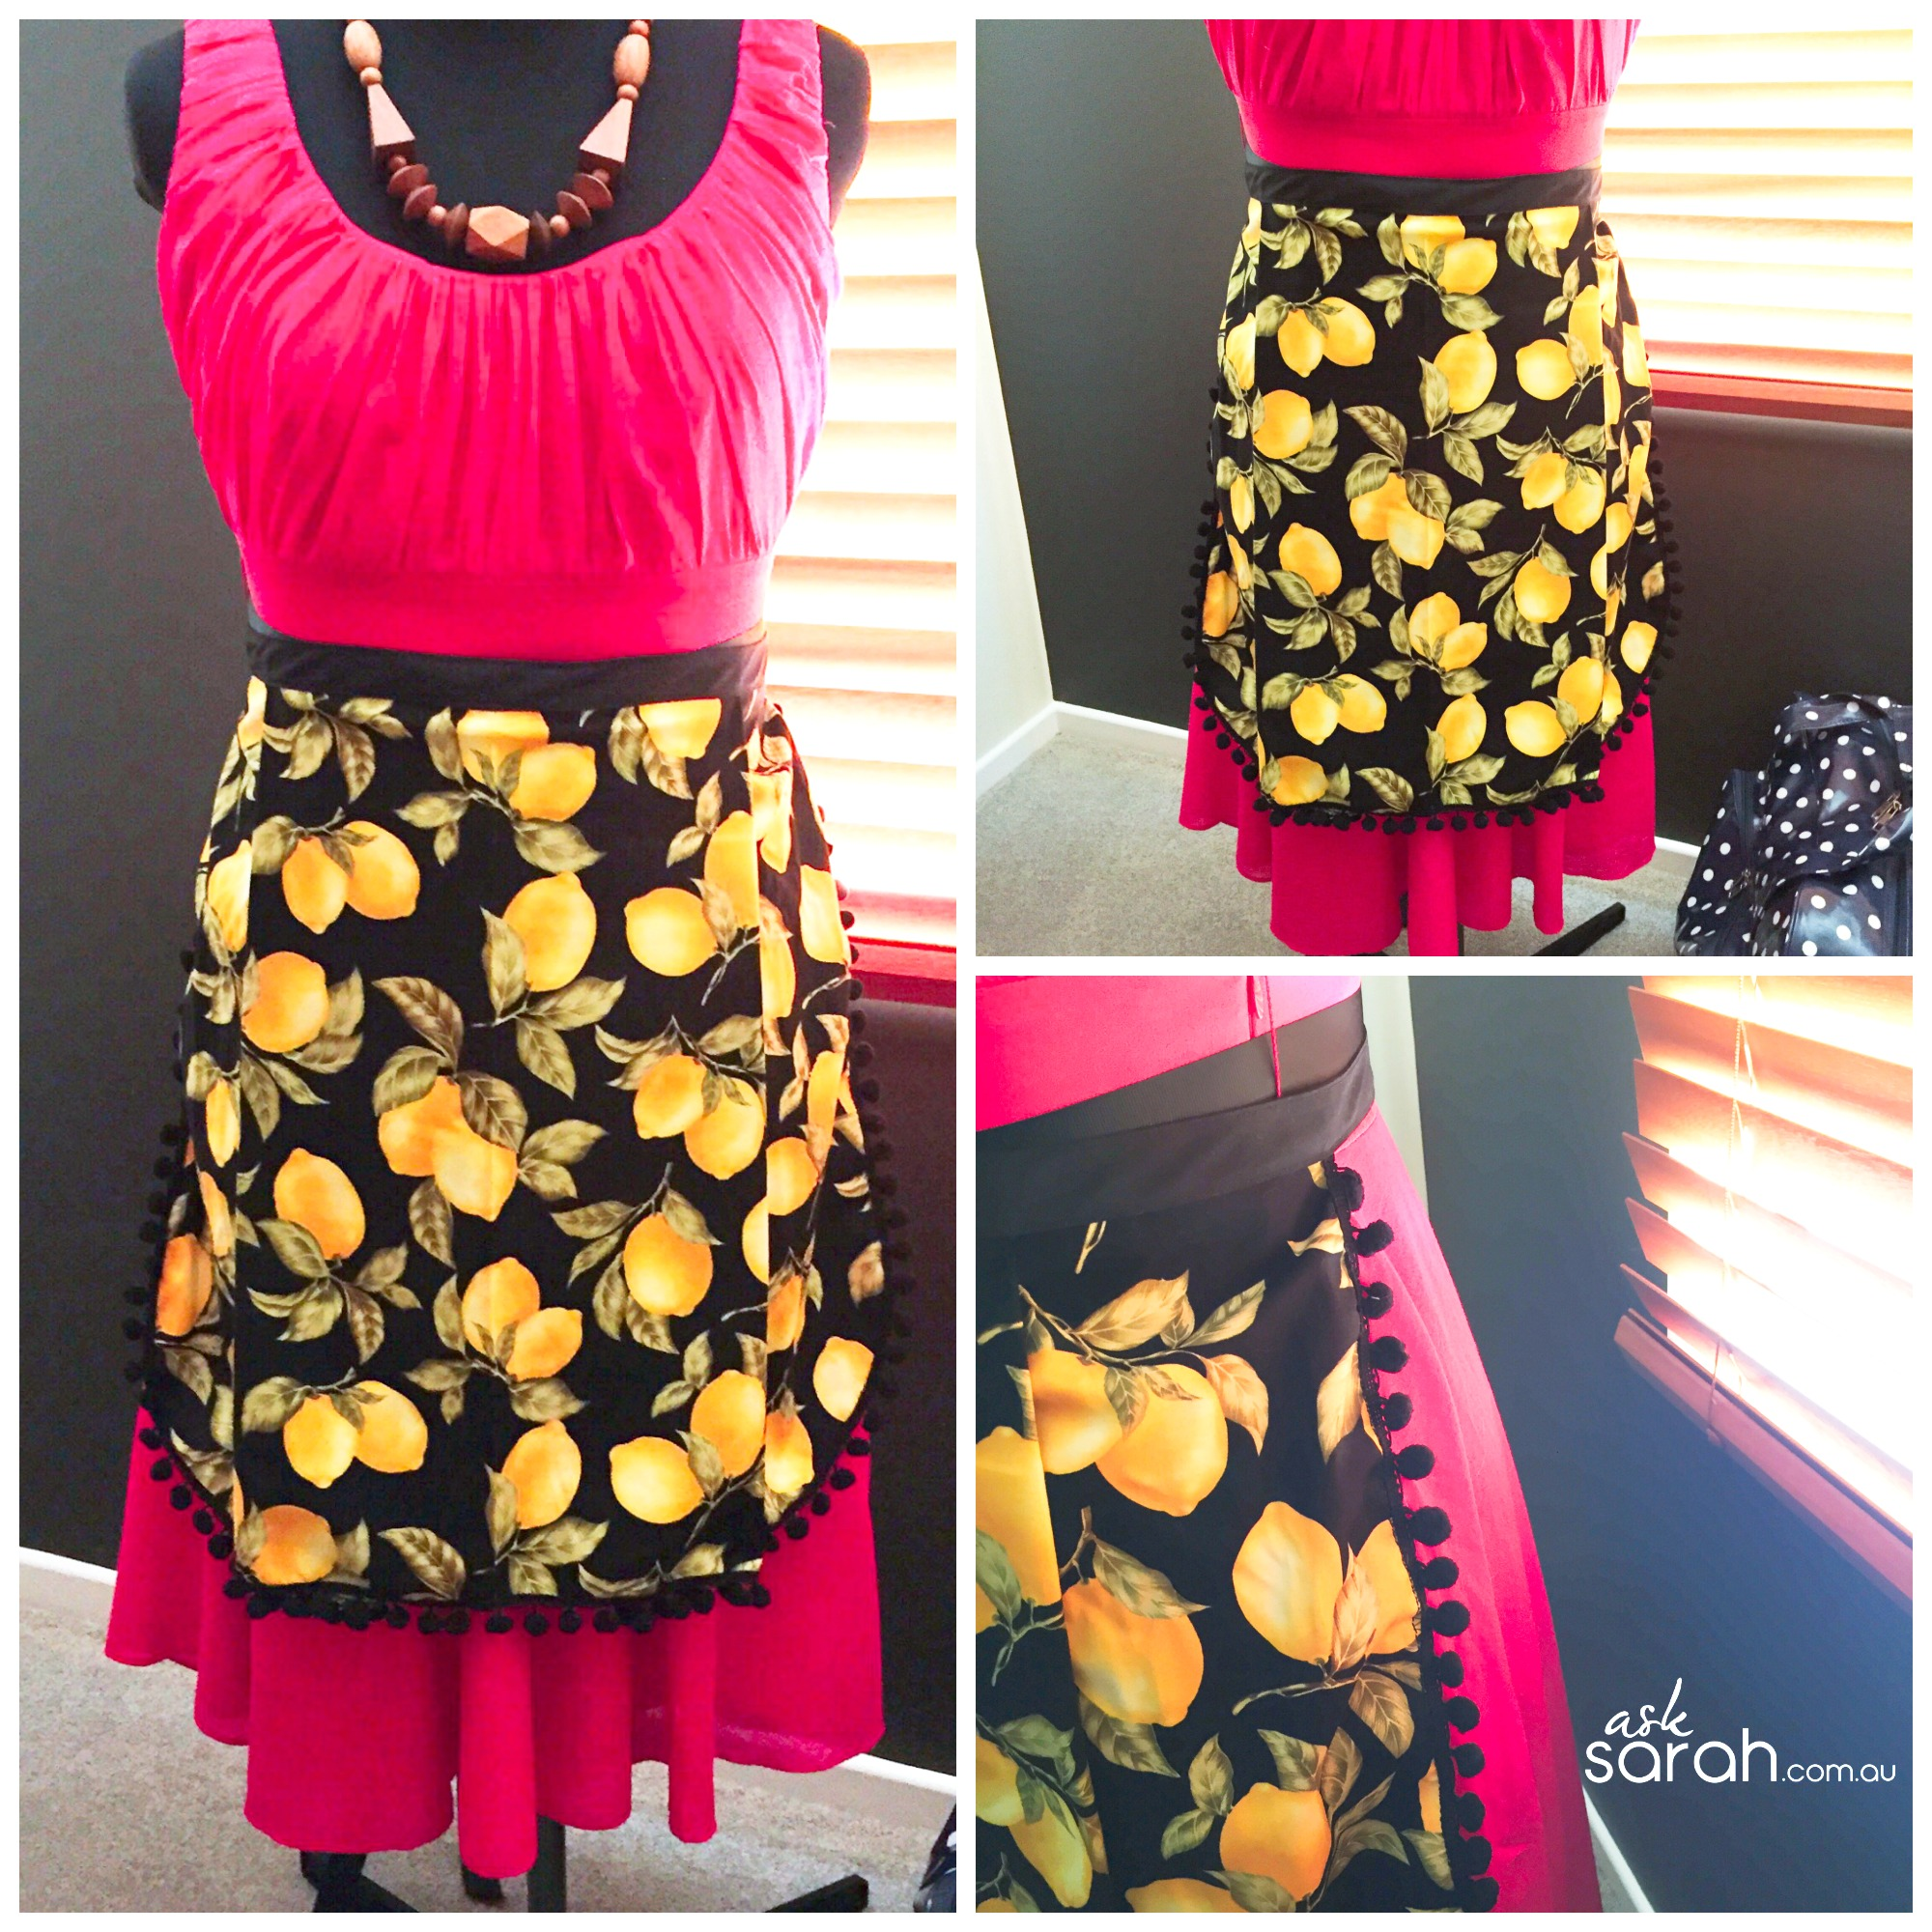 Sew: Easy & Elegant Pom Pom Apron {Make This In Just 30 Minutes! With 1/2 A Metre of Fabric}